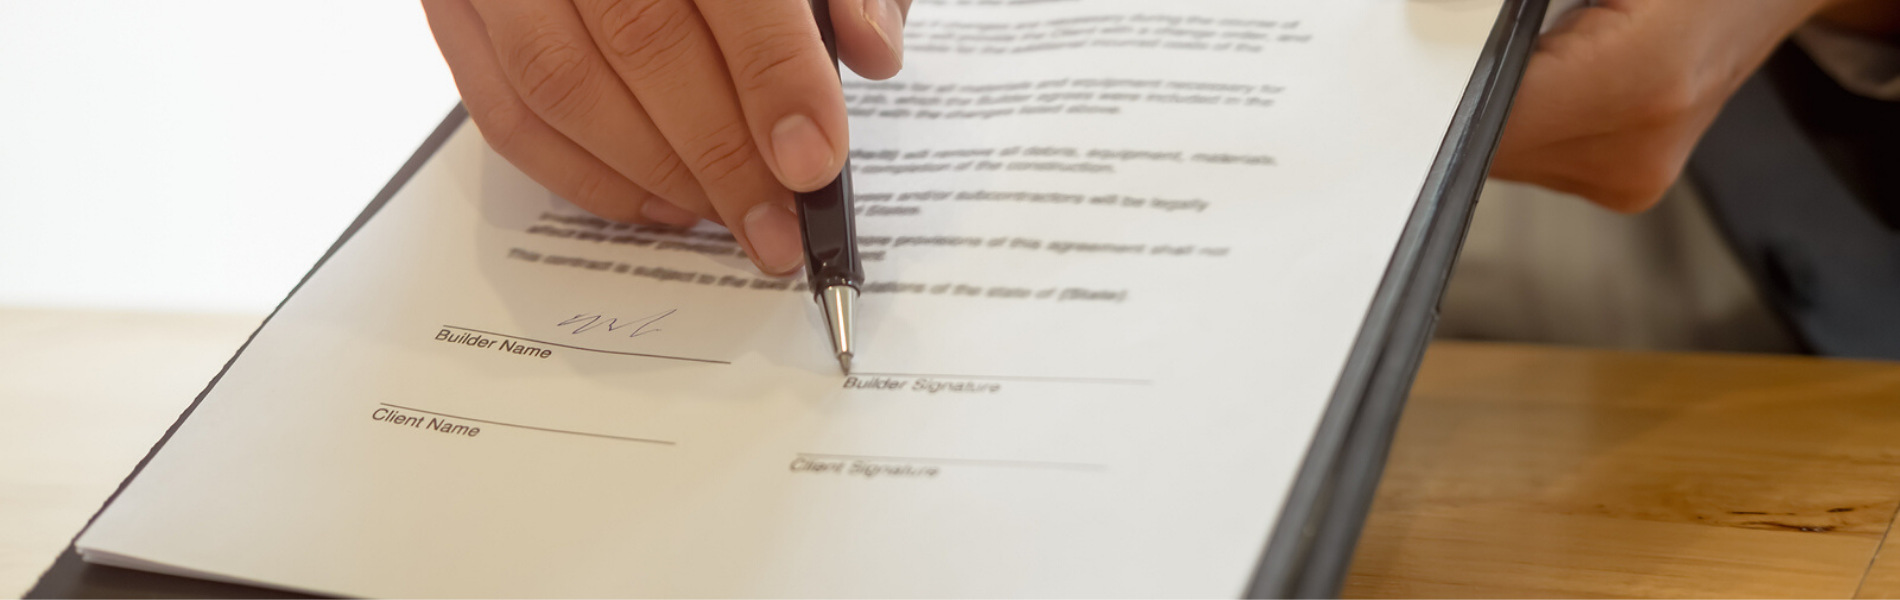 person holding a clipboard and pen for signature - Link to Contract Administration